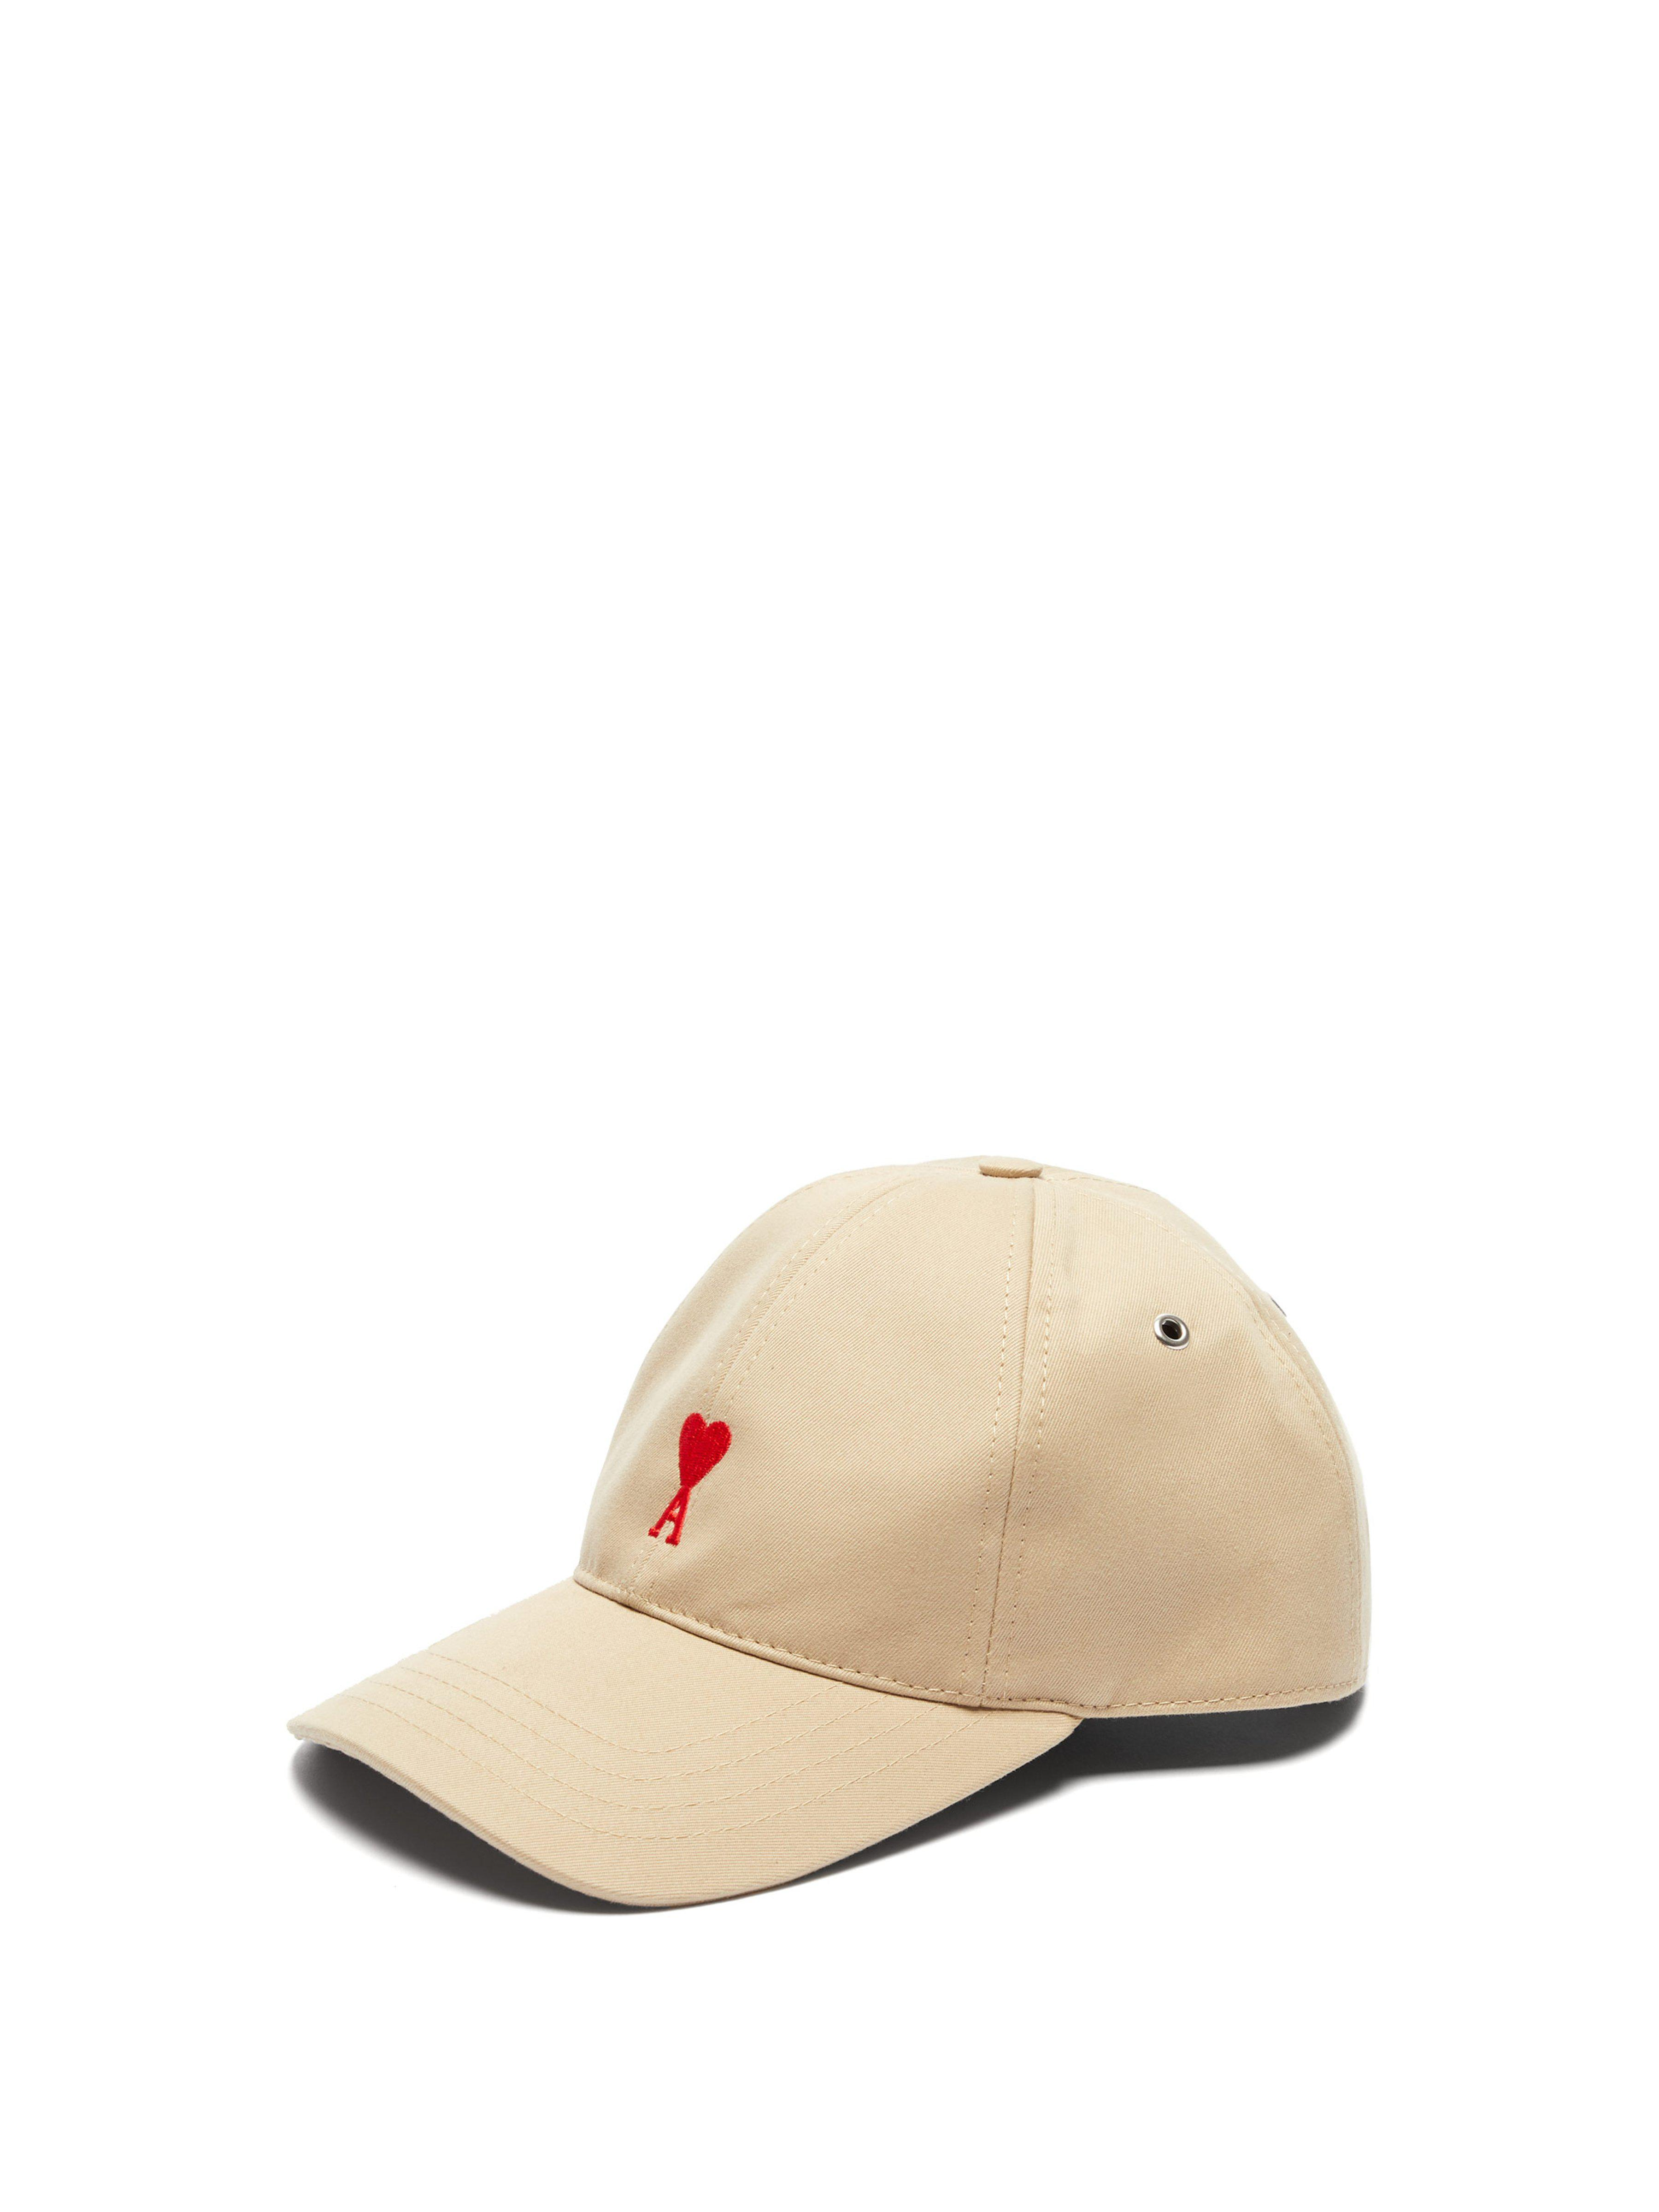 a0846975c85 Ami Logo Embroidered Cotton Cap in Natural for Men - Lyst